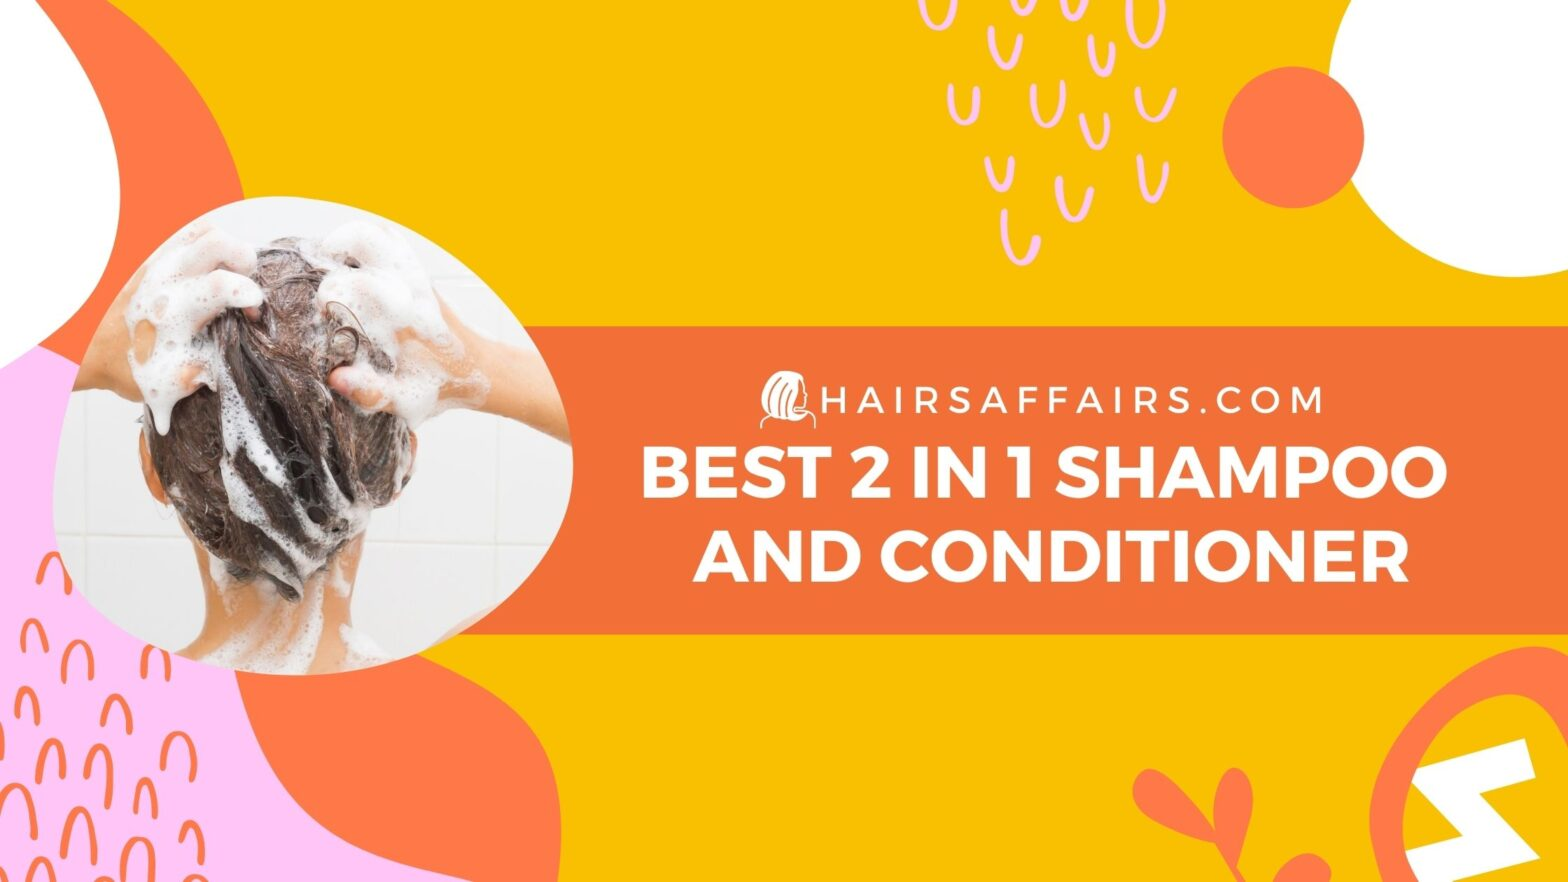 HA-Best-2-in-1-shampoo-and-conditioner